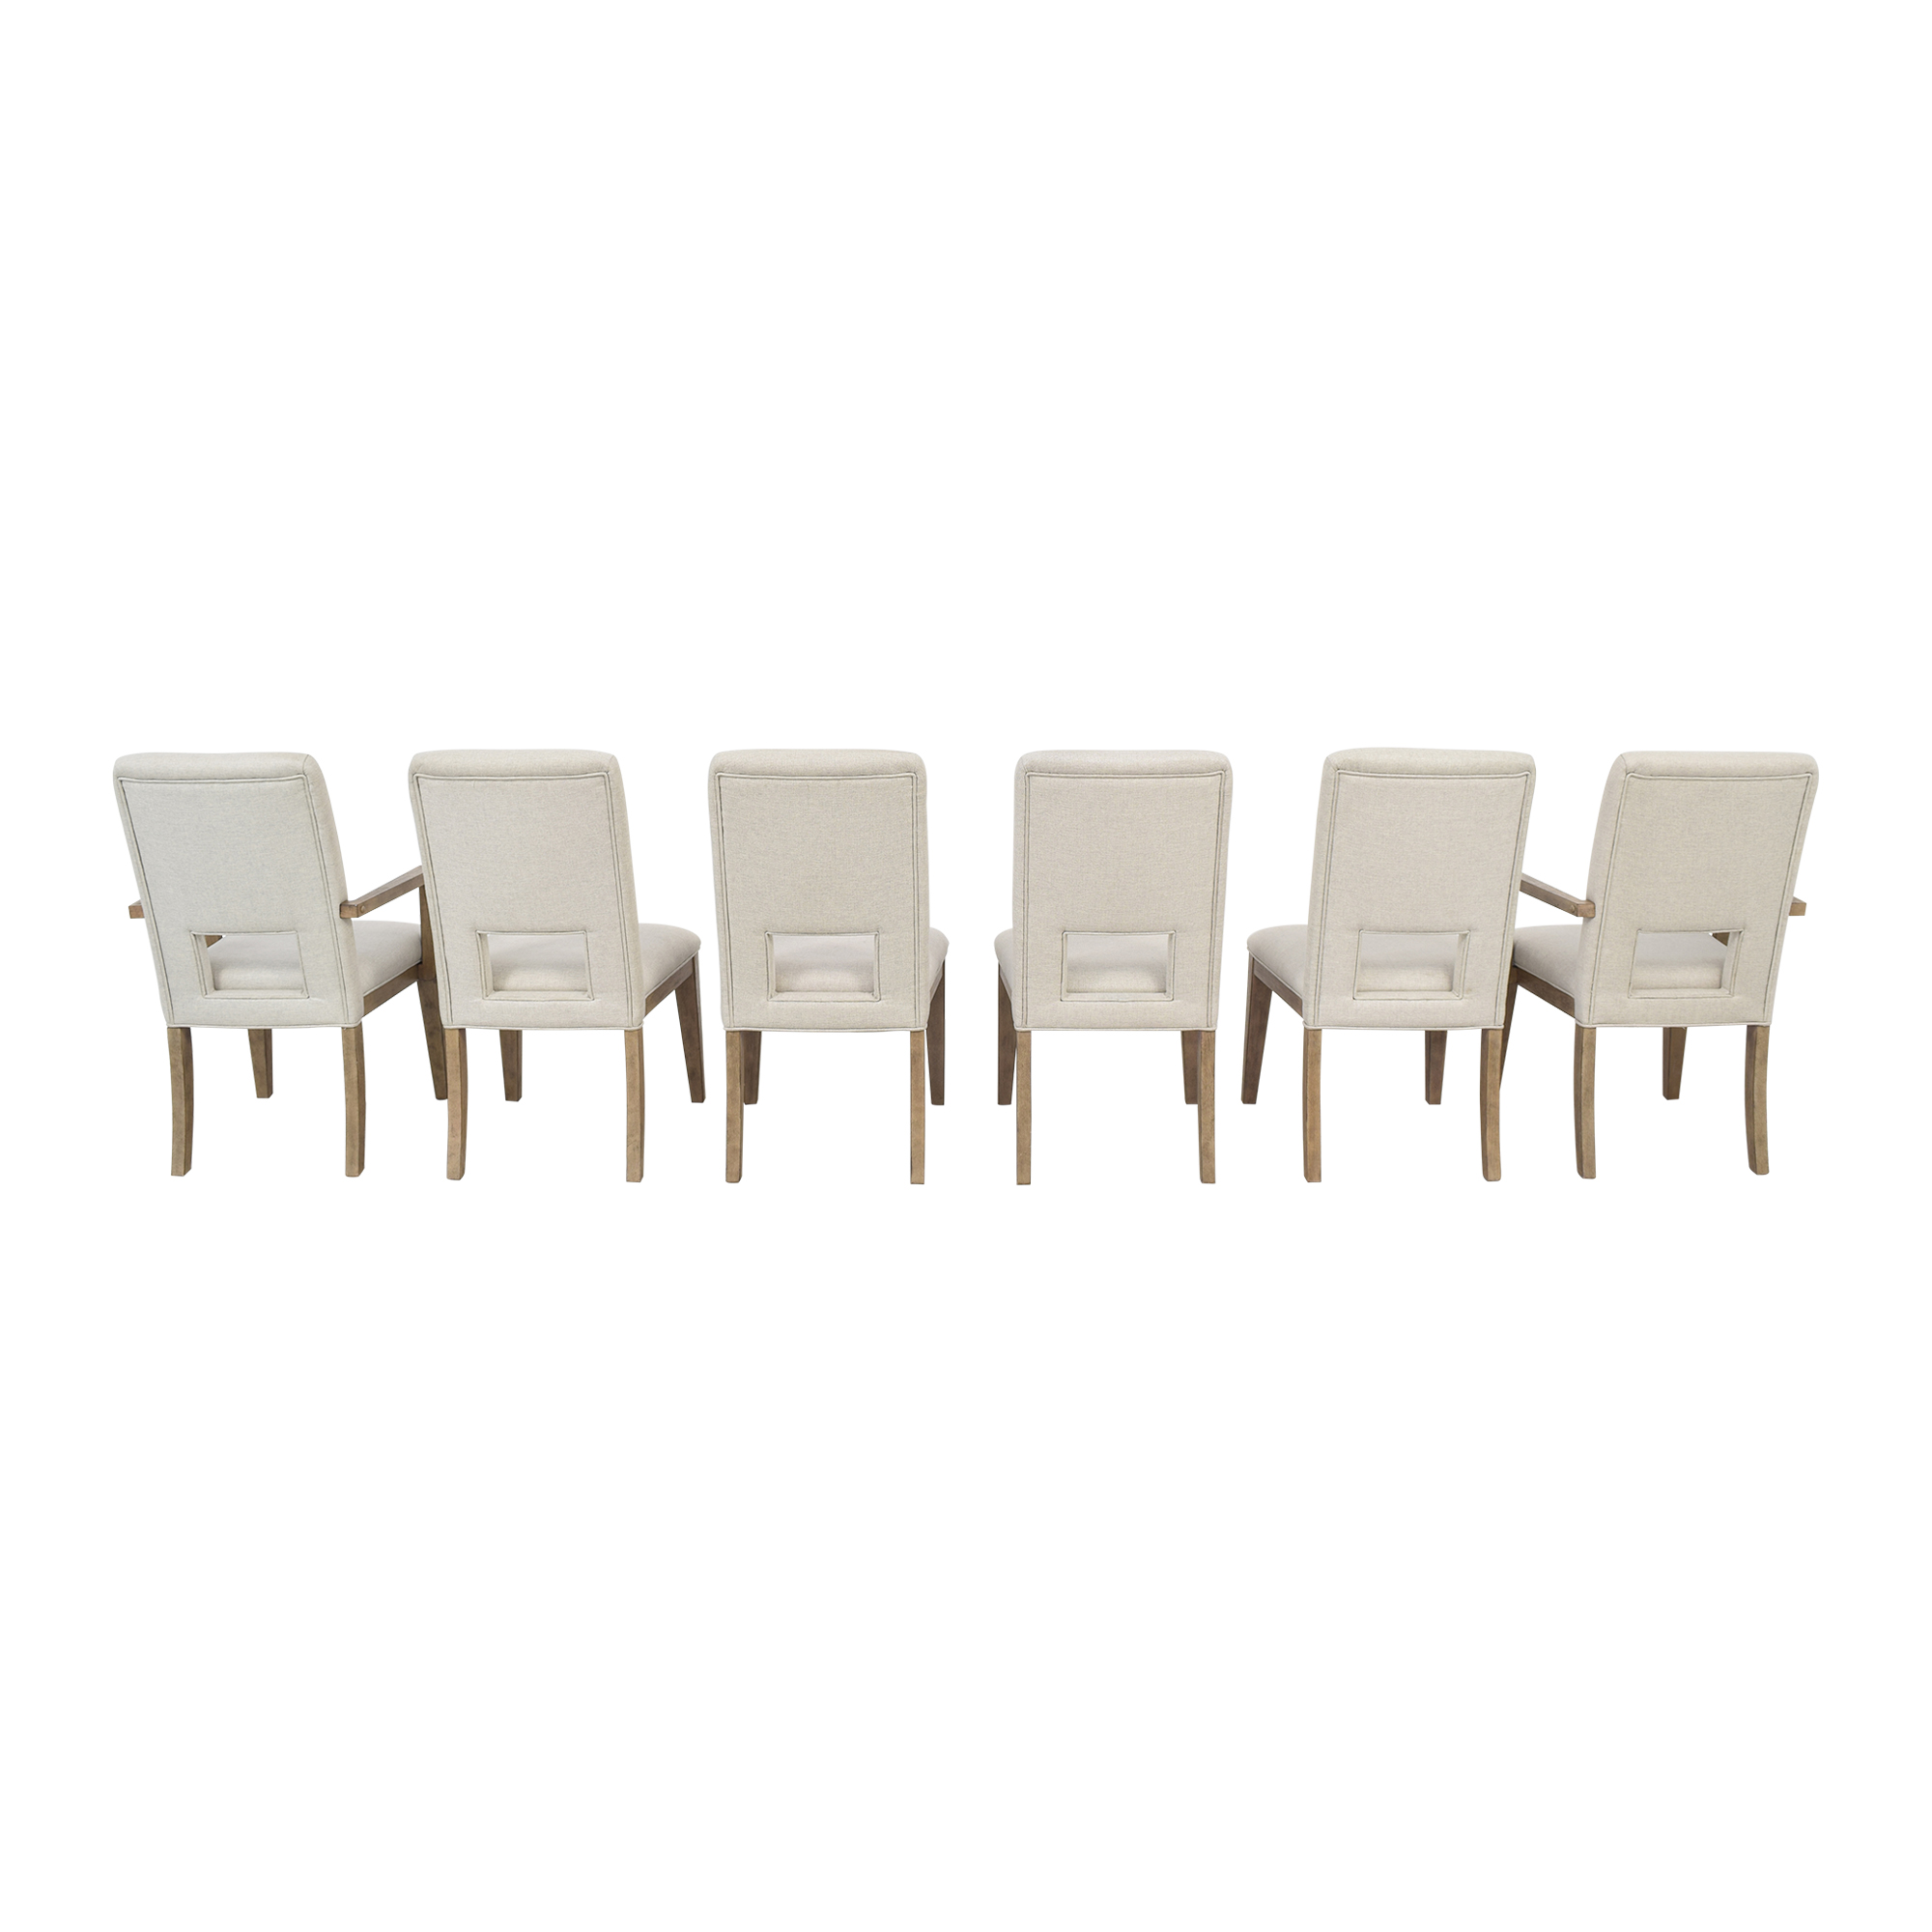 Macy's Macy's Altair Dining Chairs ma